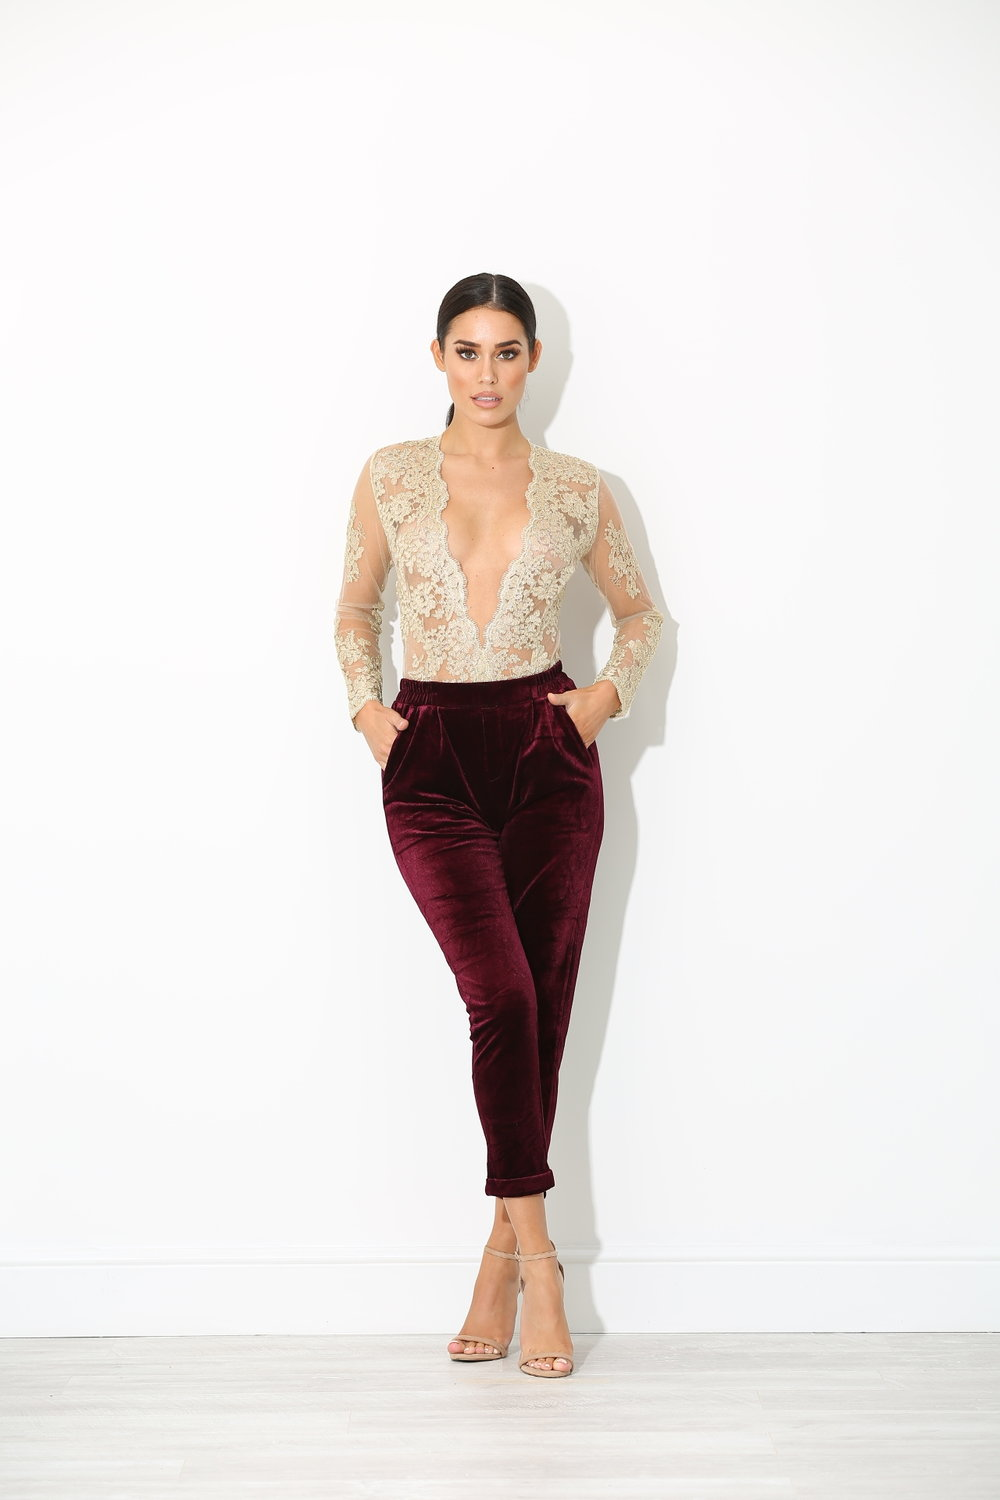 Refined Velvet - Sensual but stylish, a pair of Plum Liama trousers can be styled as a statement piece with an Eva Gold Lace bodysuit.